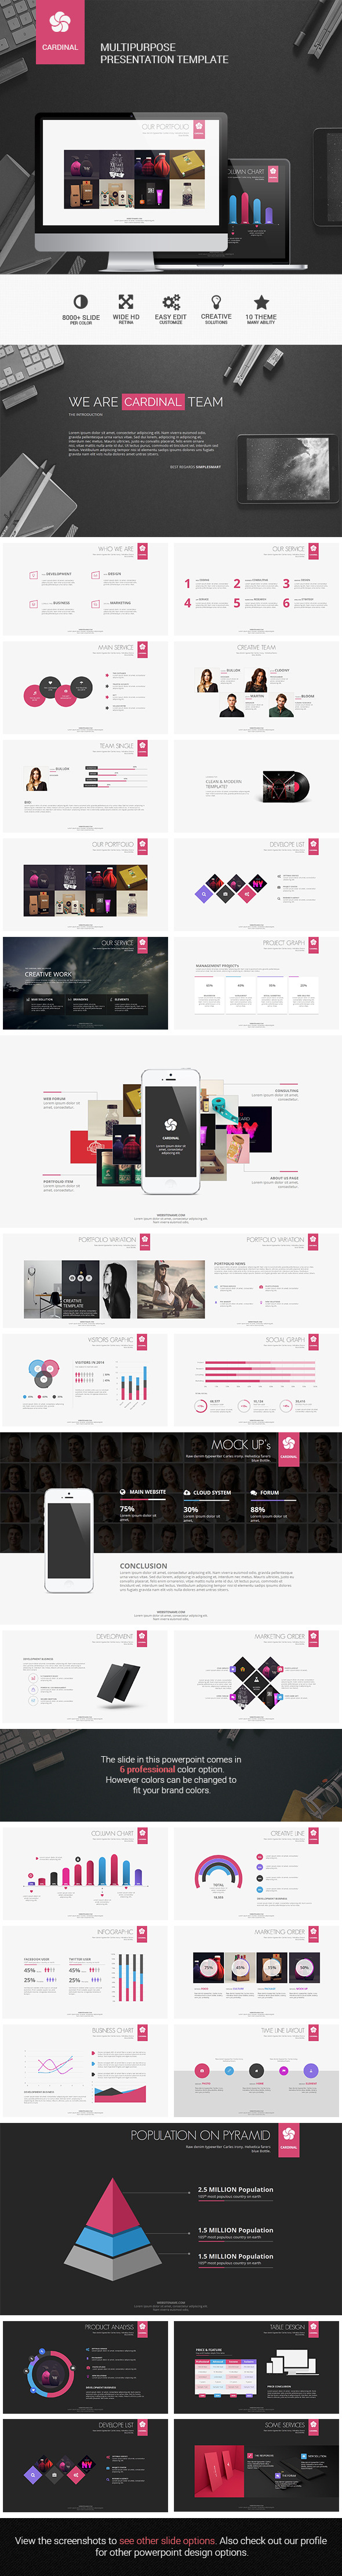 Cardinal Multipurpose Presentation Template